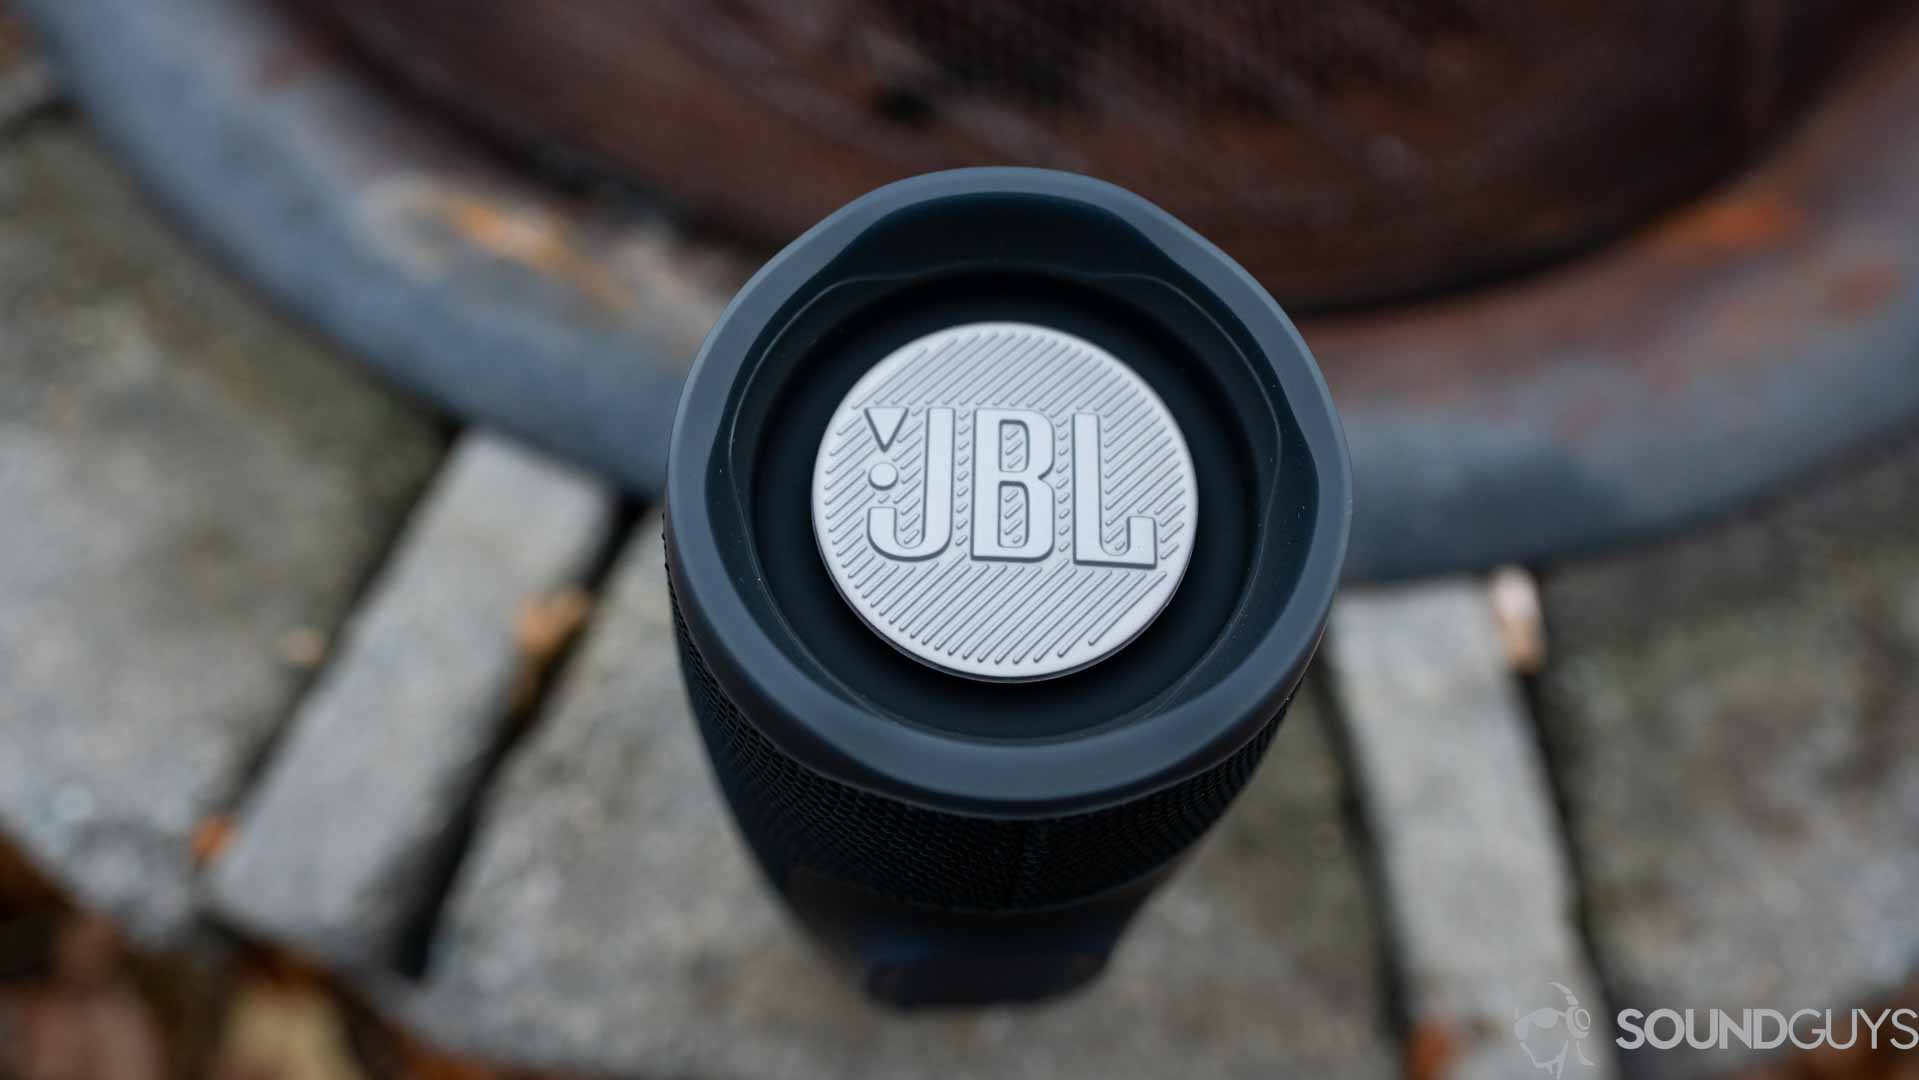 JBL Charge 4 review: Worth the money, kind of - SoundGuys